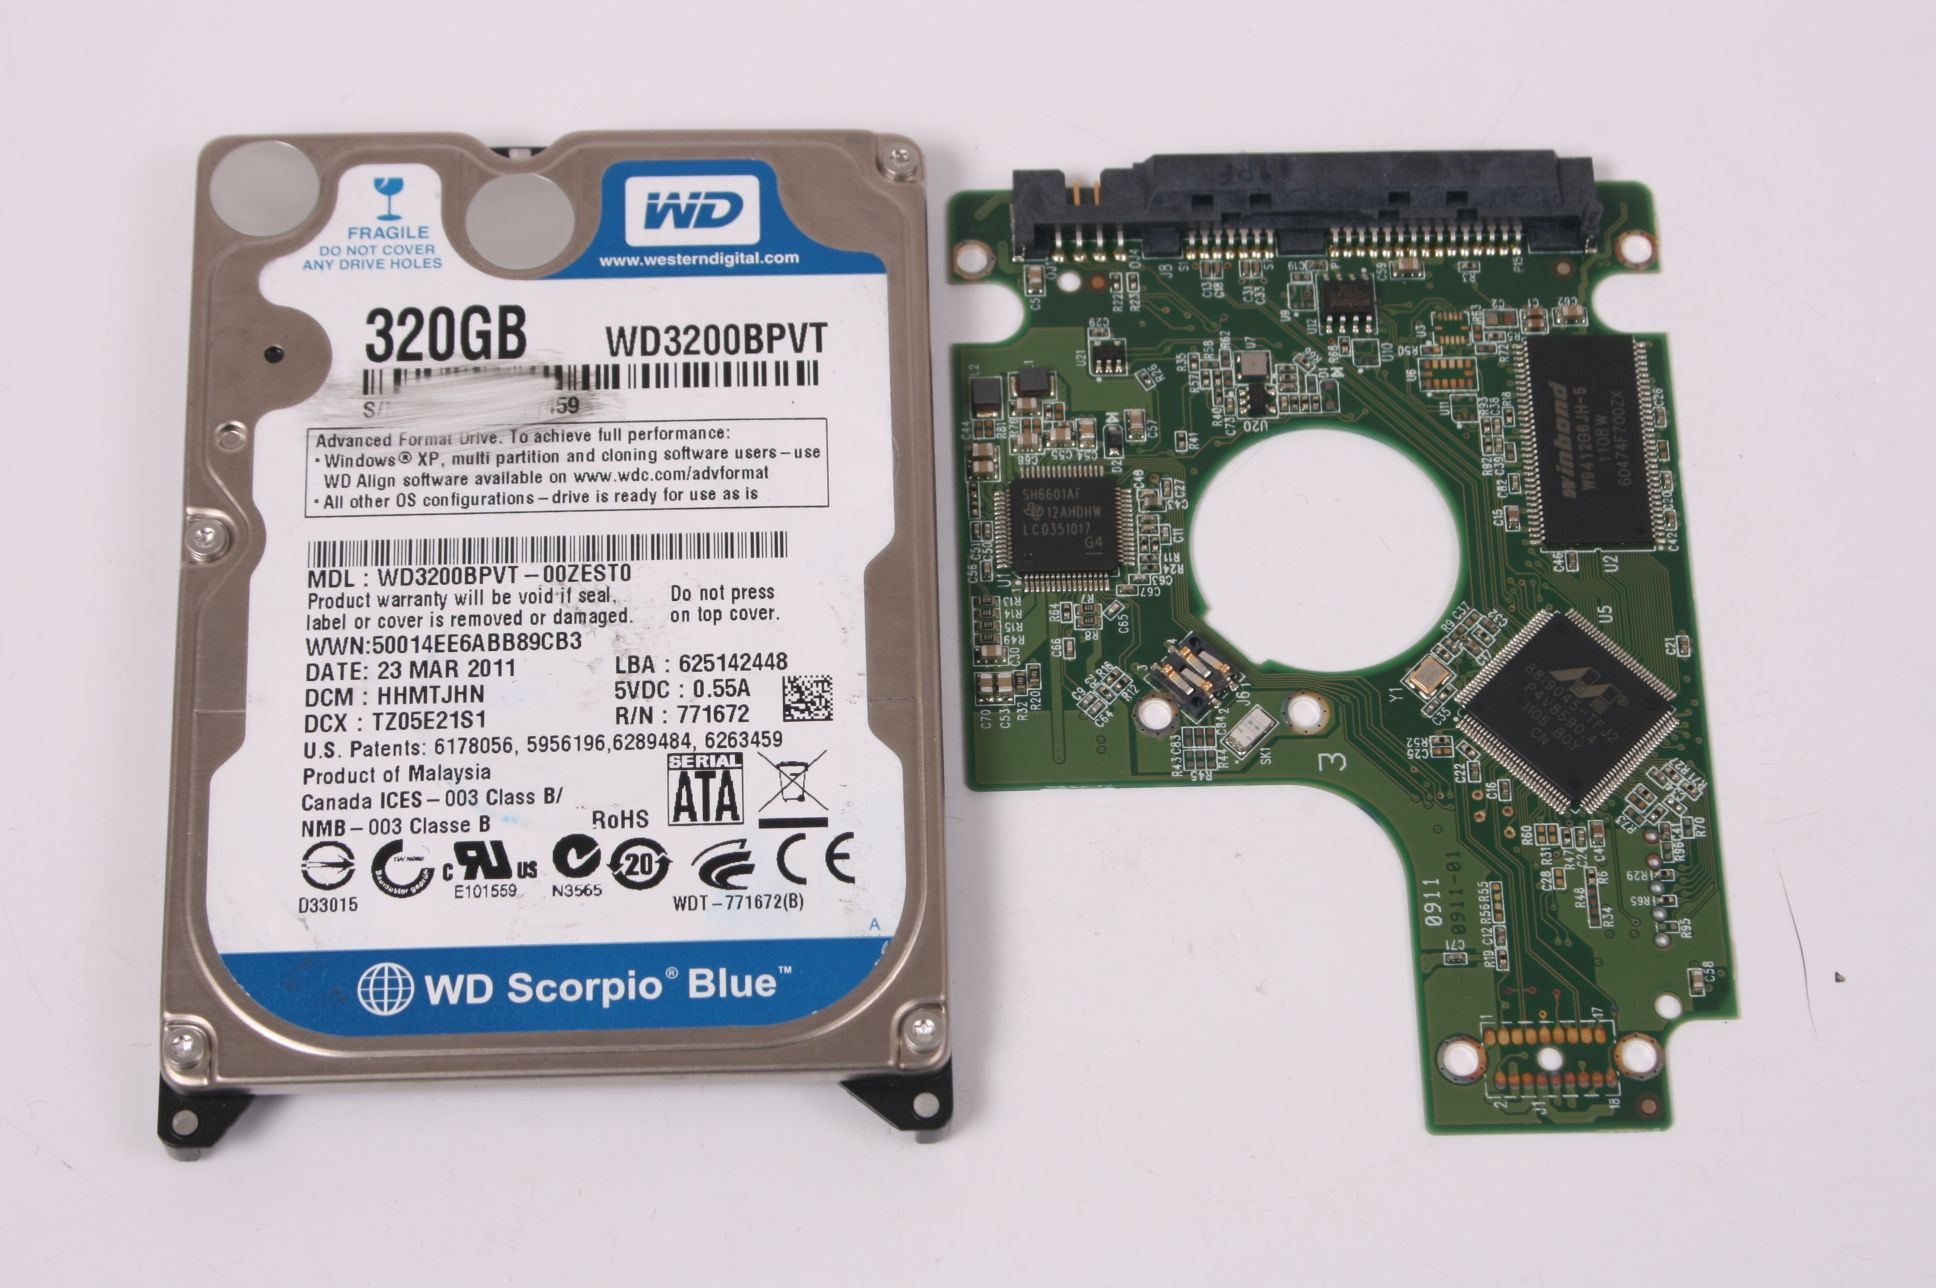 WD WD3200BPVT-00ZEST0 320GB SATA 2,5 HARD DRIVE / PCB (CIRCUIT BOARD) ONLY FOR DATA